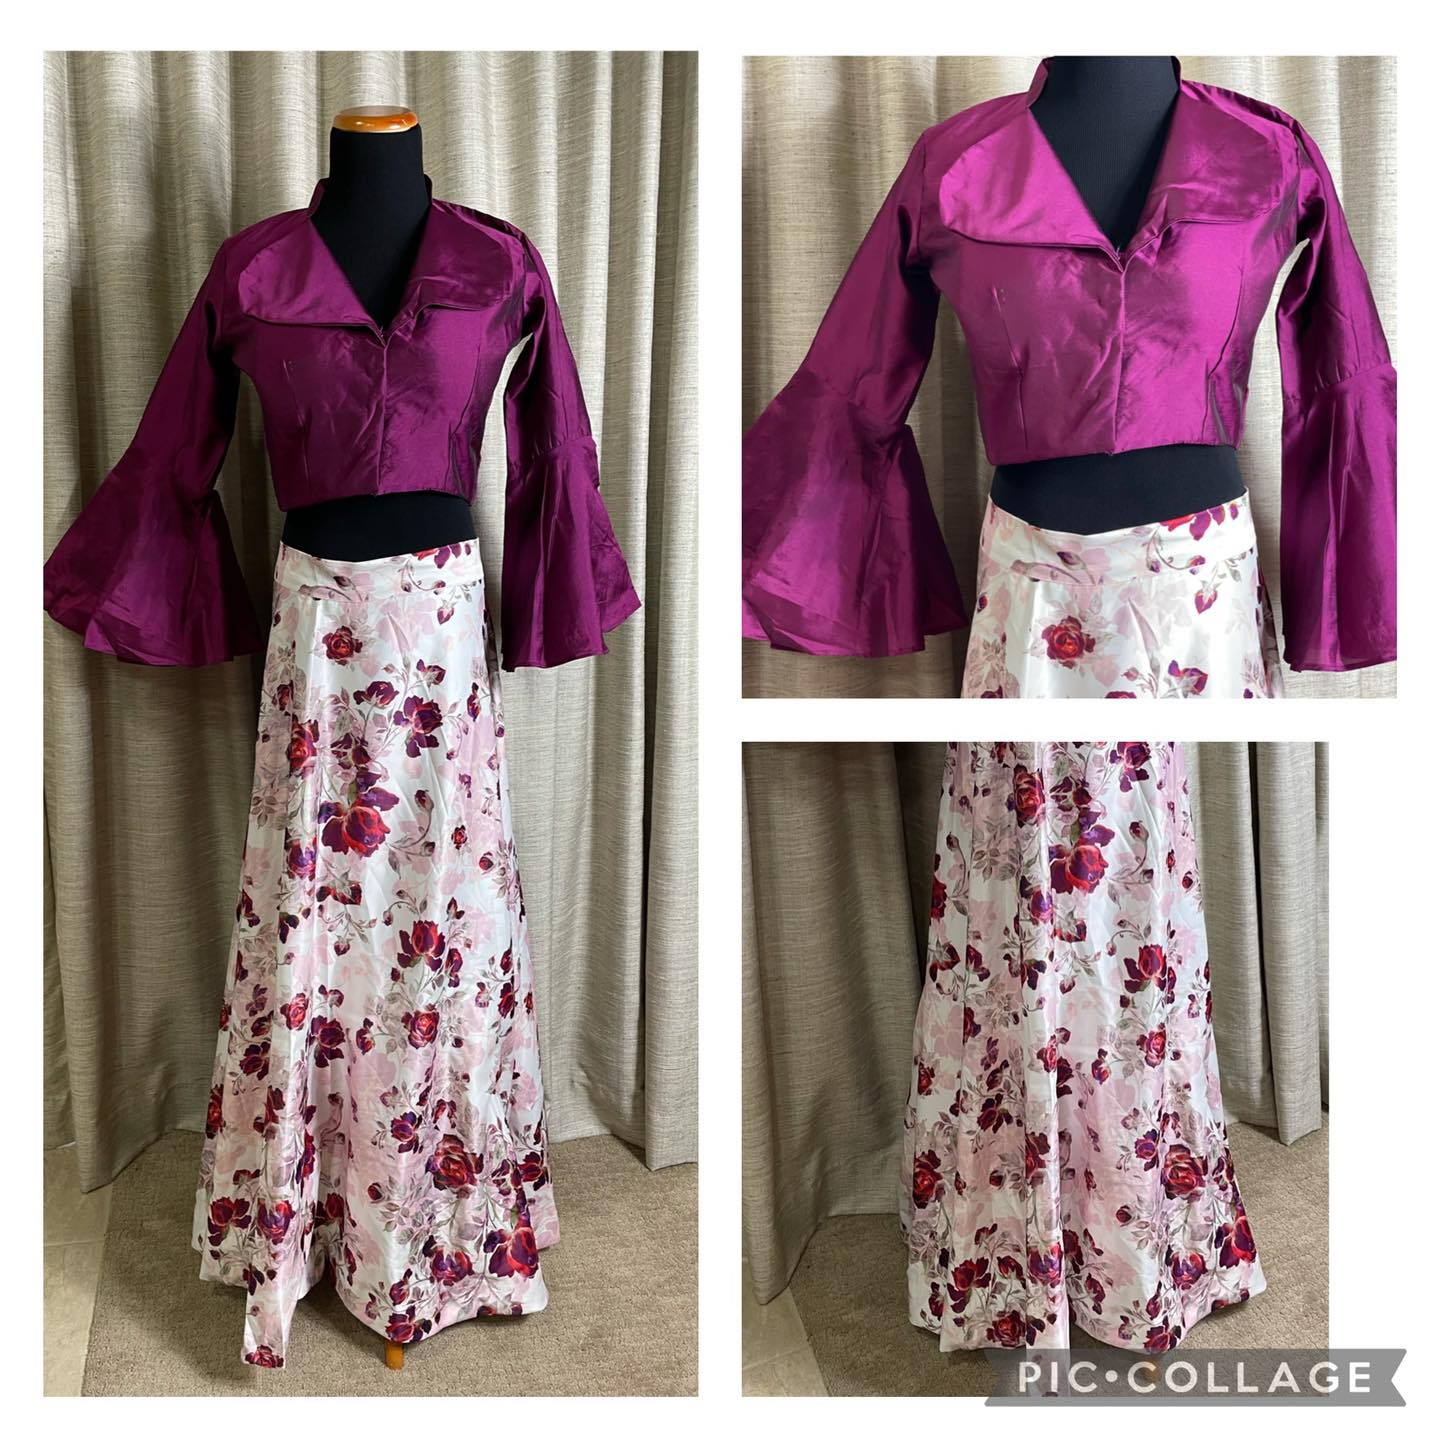 Pretty Satin skirt with barkham to give it body and flared sleeves silk cotton top. Skirt waist - free sz  length 42 inches  blouse sz 36/38( will not extend beyond ) . Price : $68+ shipping. 2021-10-17